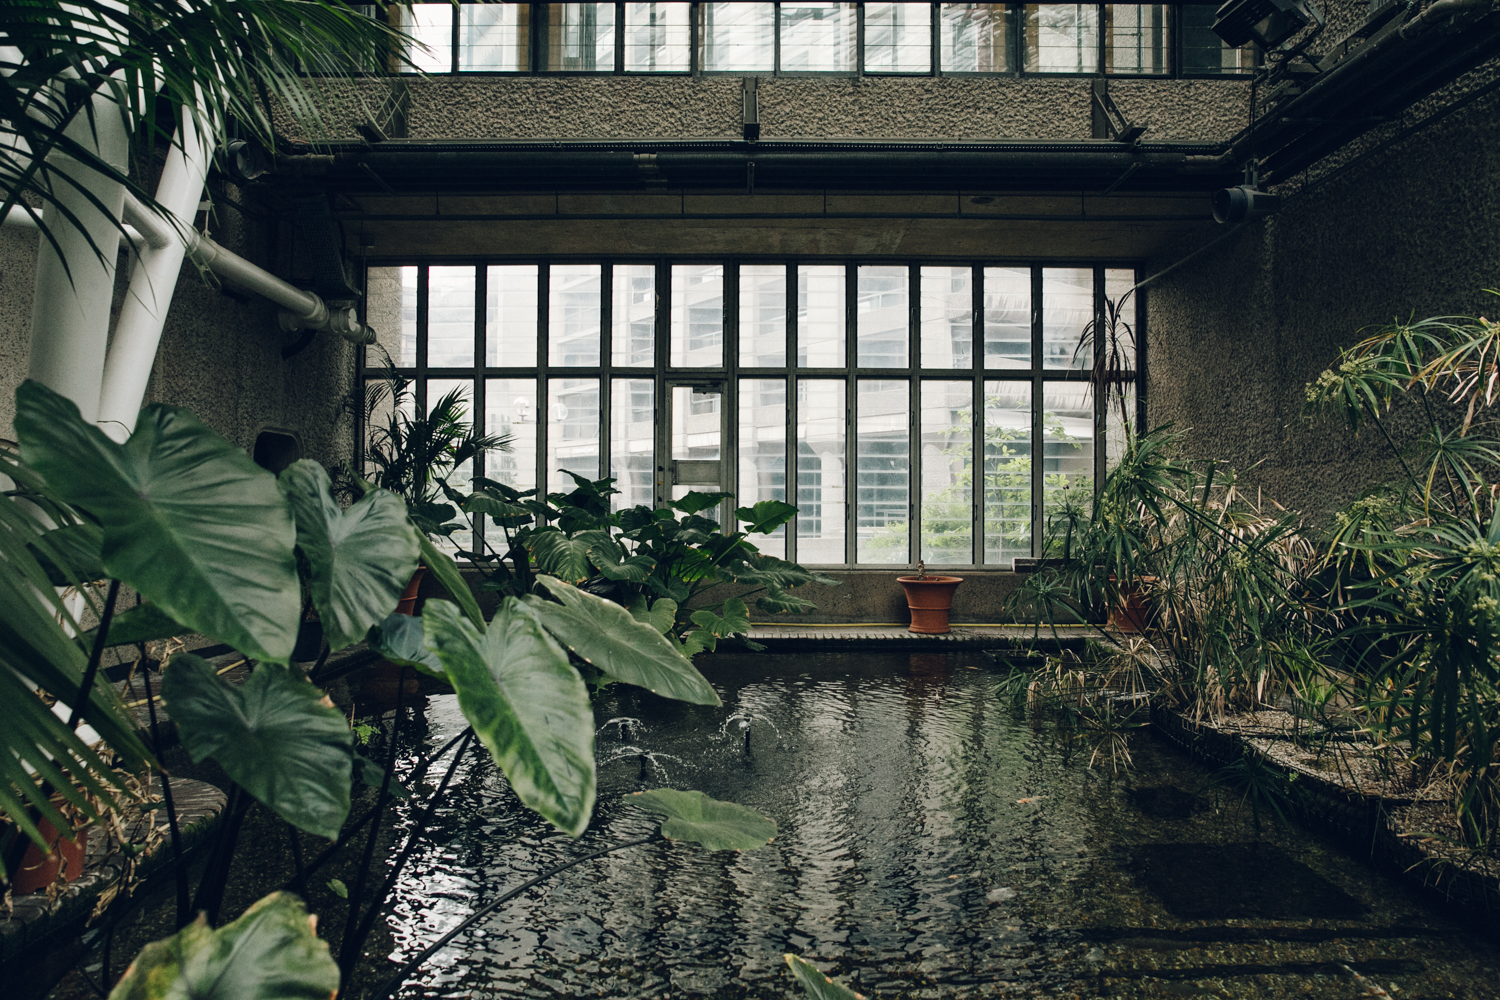 Haarkon Barbican Conservatory Greenhouse Glasshouse jungle plants green london travel concrete architecture water pond carp